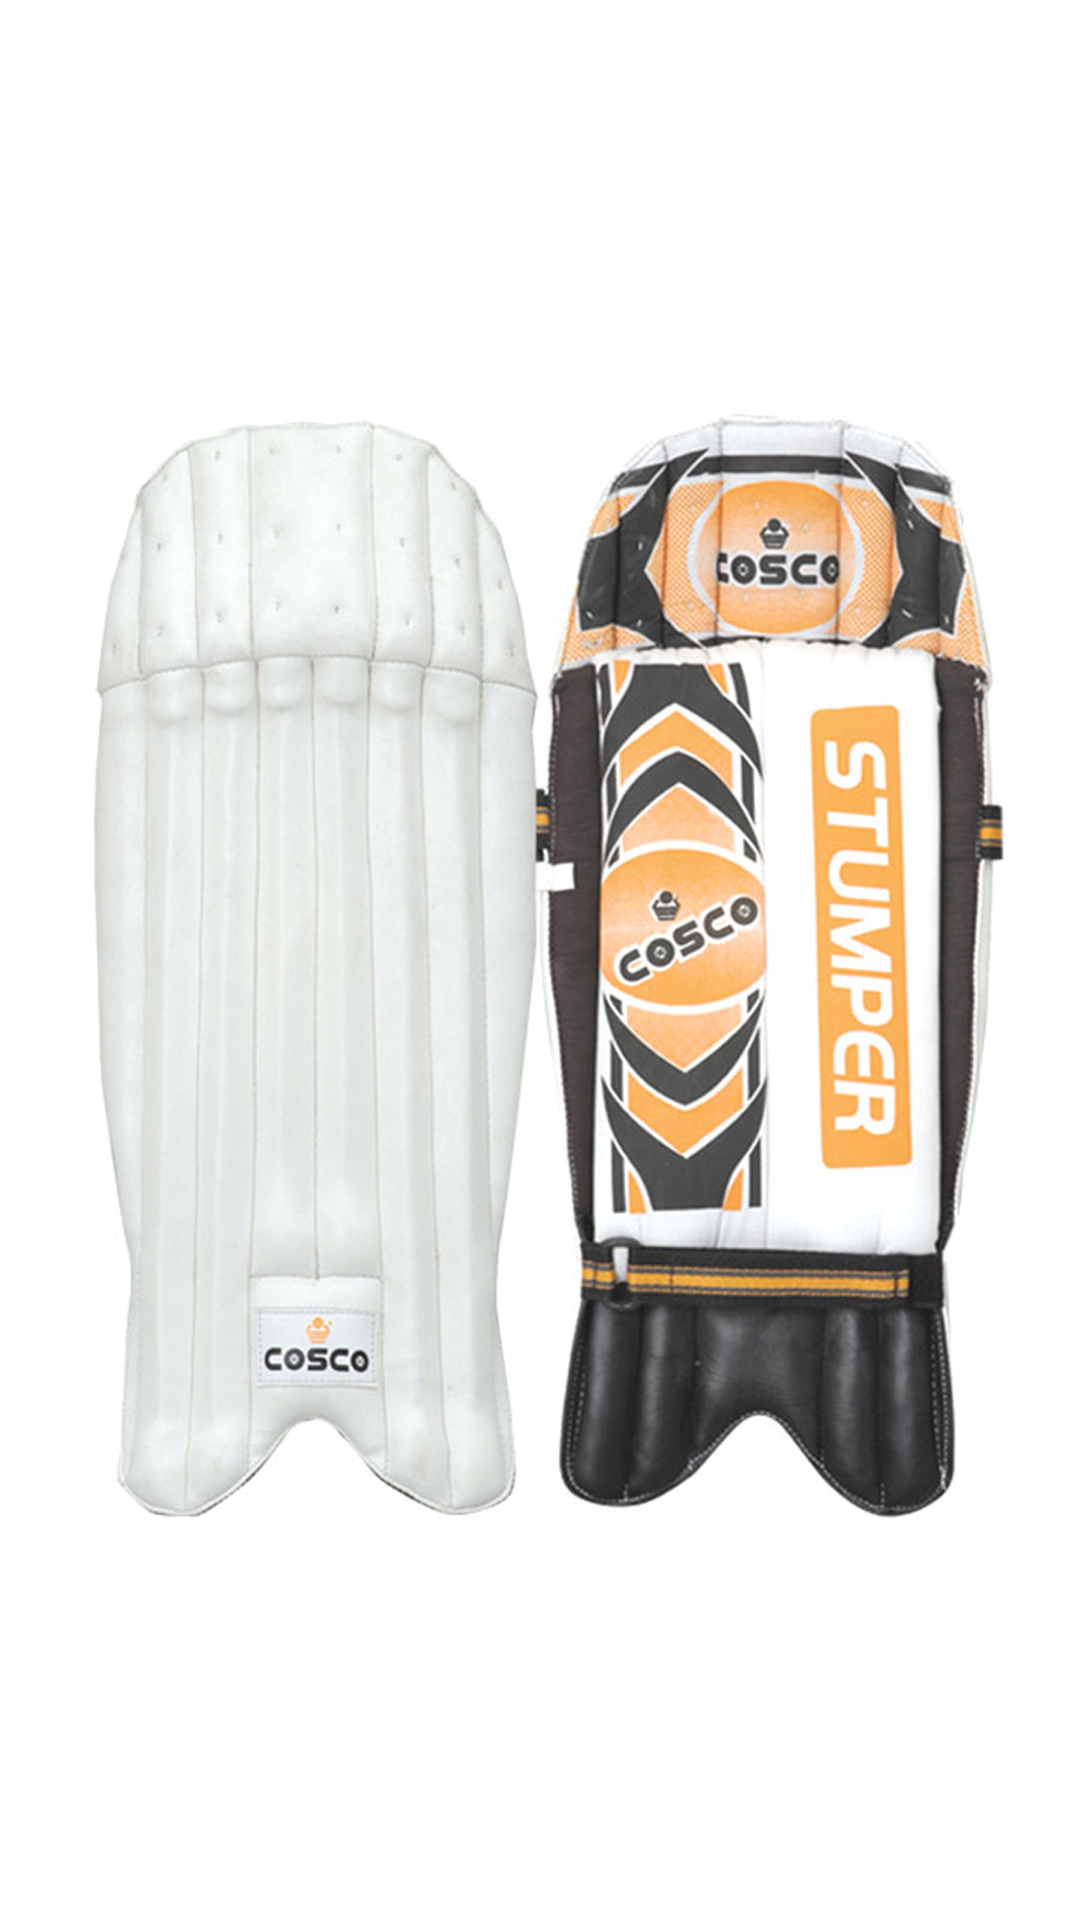 Cosco Stumper Wicket Keeping Pad-White